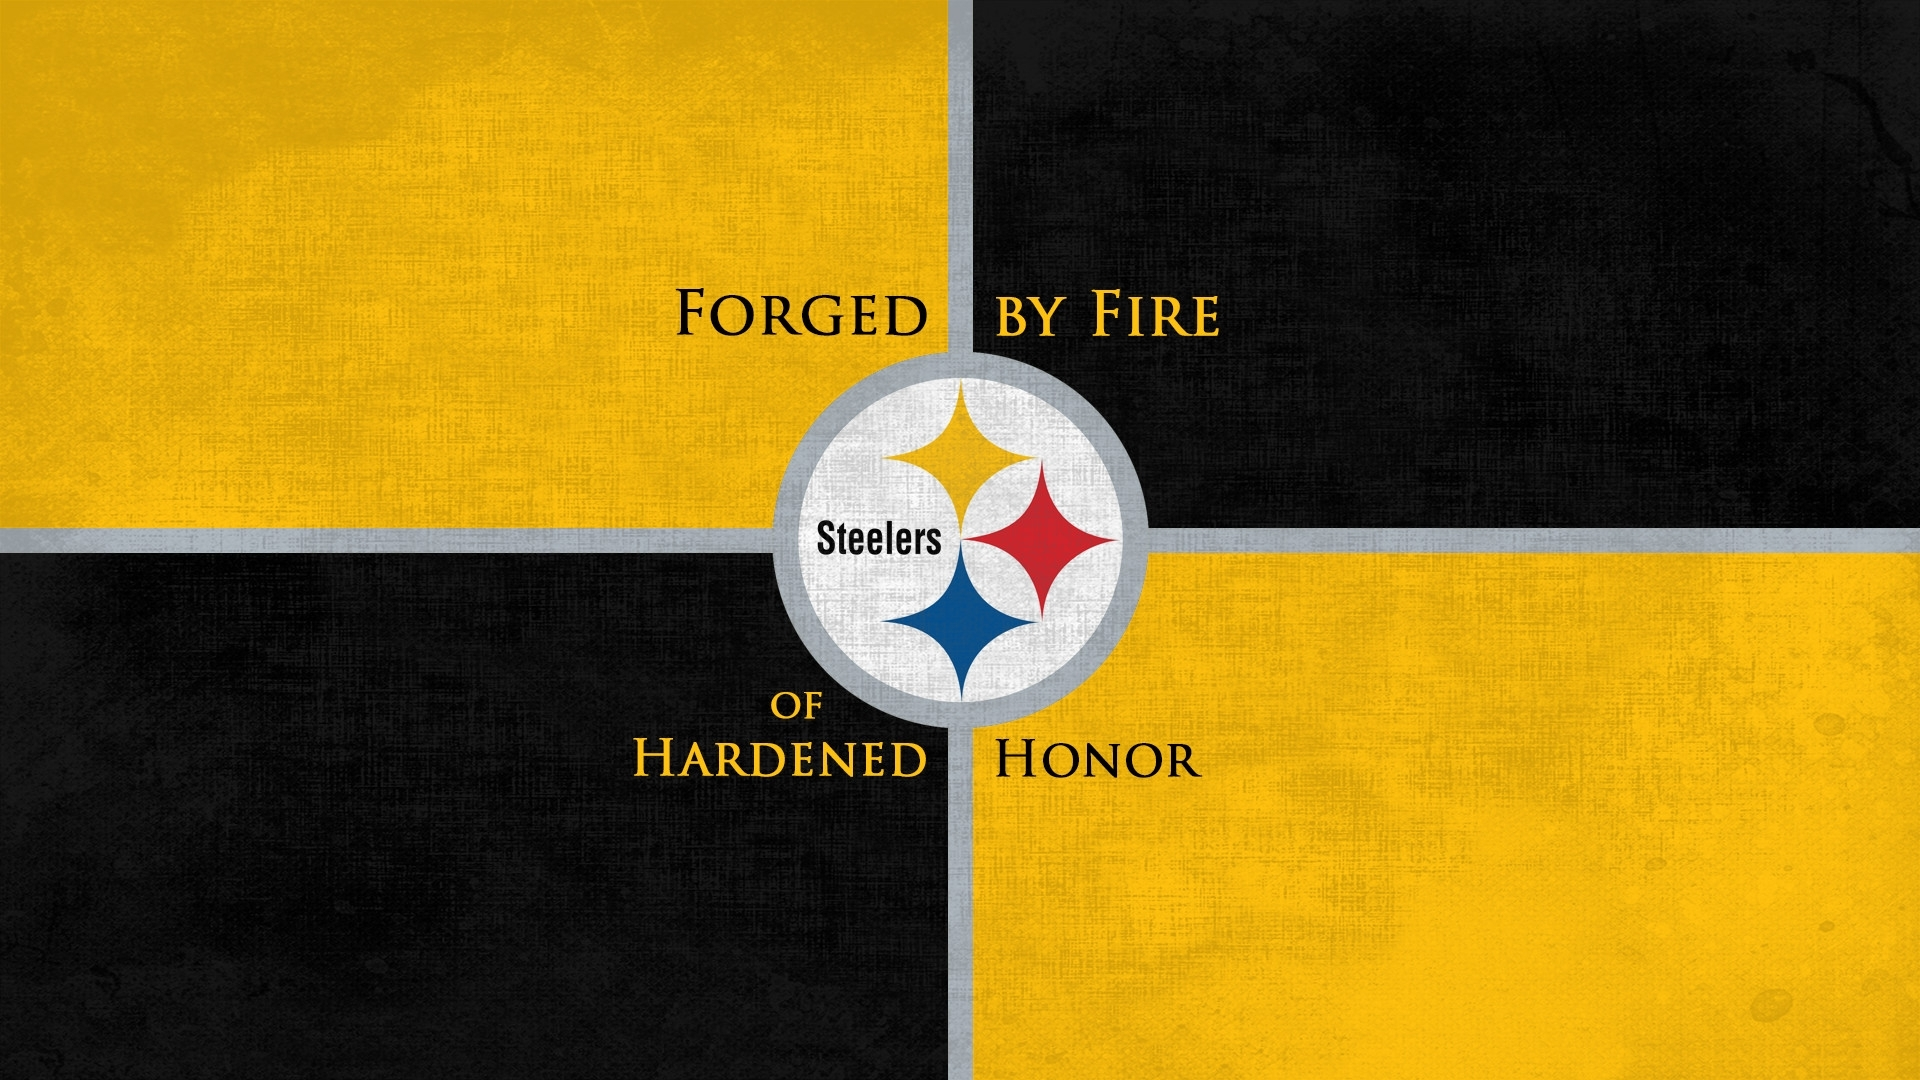 pittsburgh-steelers-wallpapers-for-computer-desktop - wallpaper.wiki